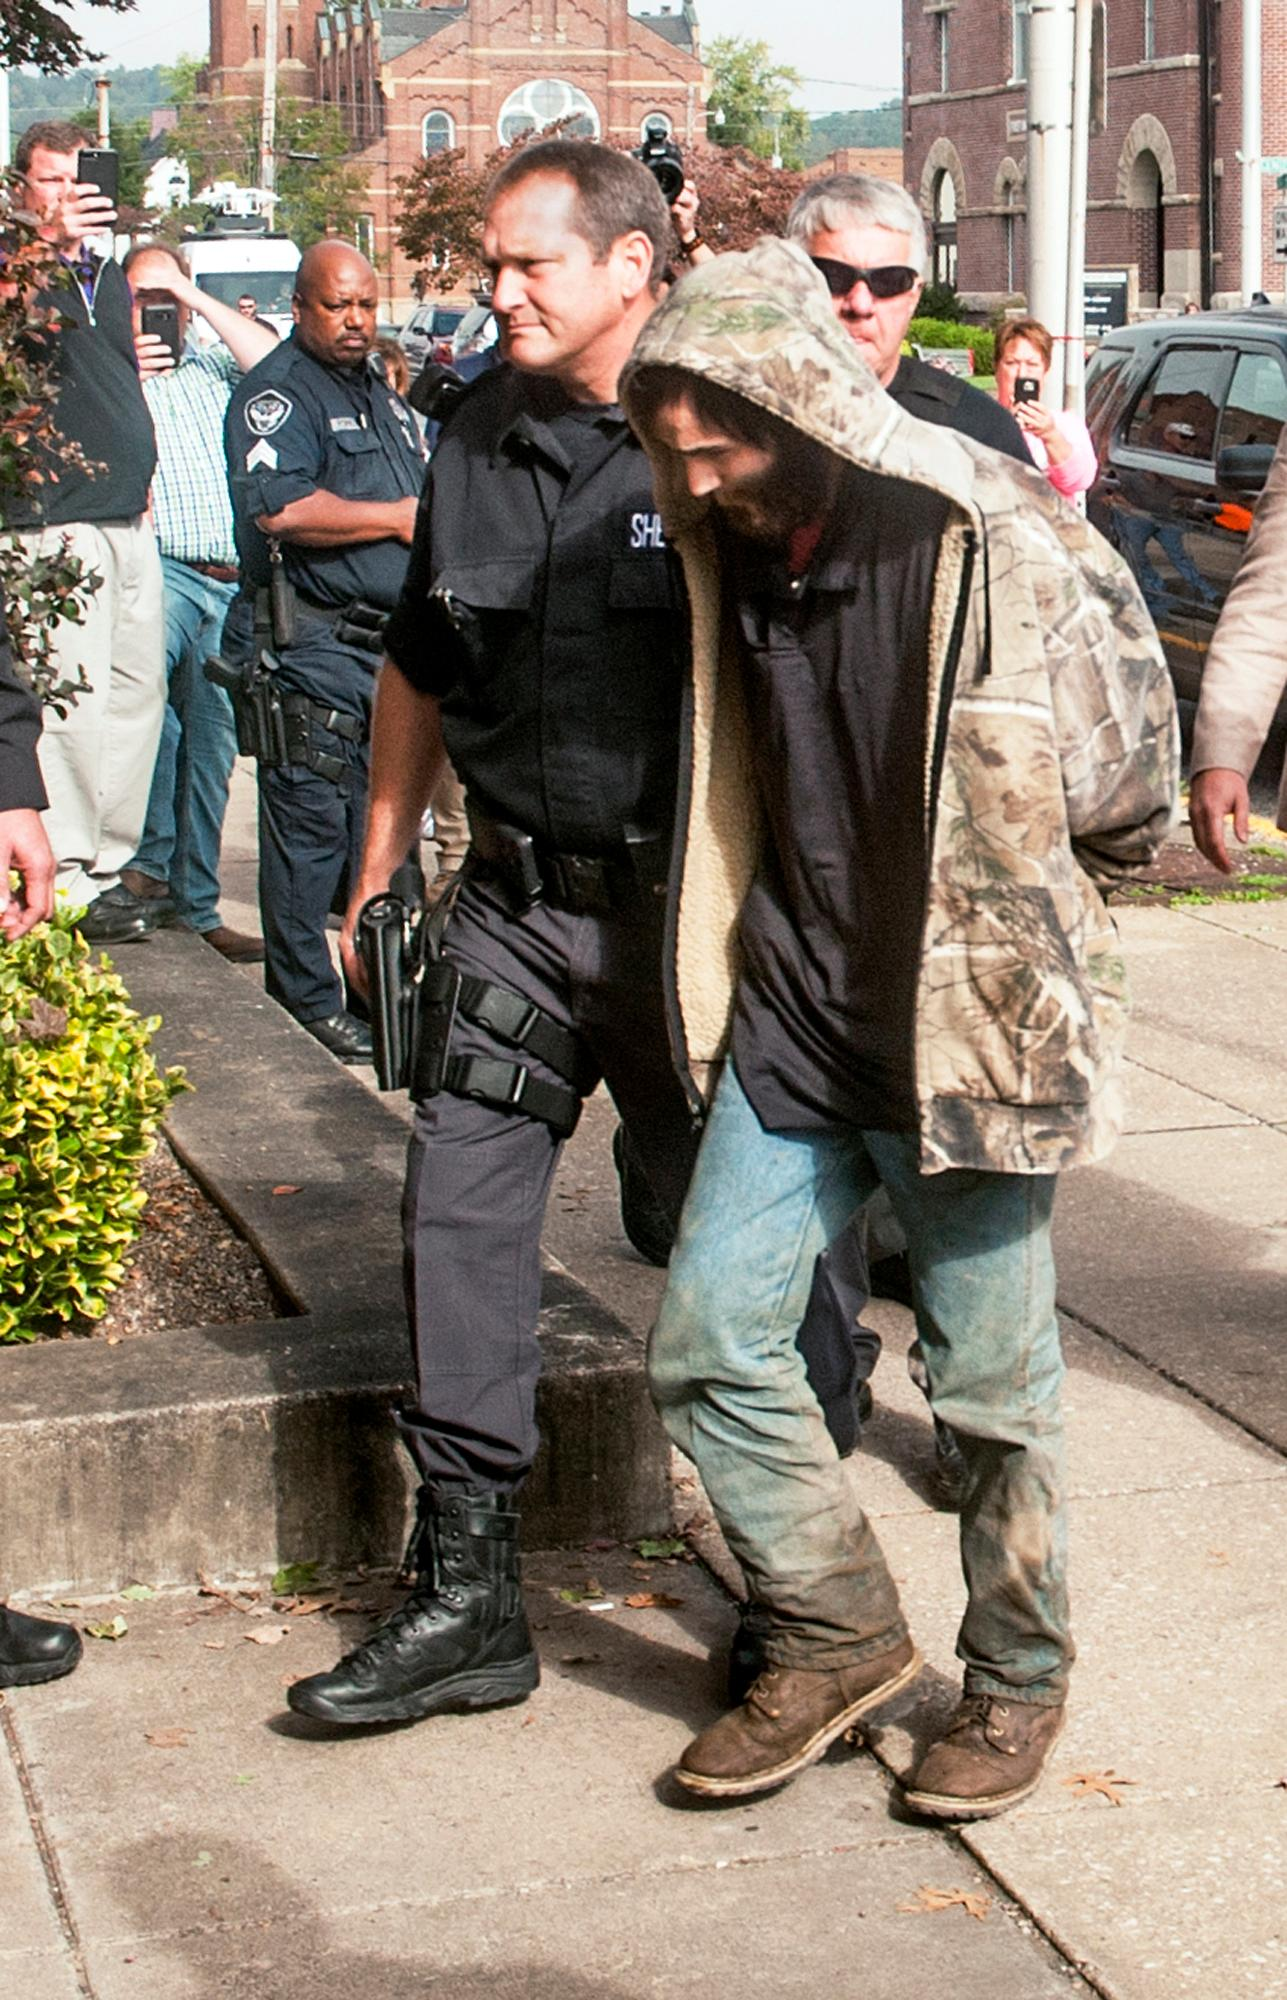 Suspect Arron Lawson, 23, is escorted into the Lawrence County Courthouse, Friday, Oct. 13, 2017 by Sheriff Jeff Lawless, left, of the Lawrence County Sheriff's Office in Ironton, Ohio. He was arrested roughly 12 miles (19 kilometers) south of where authorities found three adults dead in a house trailer on Wednesday evening.(Jessica St. James/Ironton Tribune via AP)